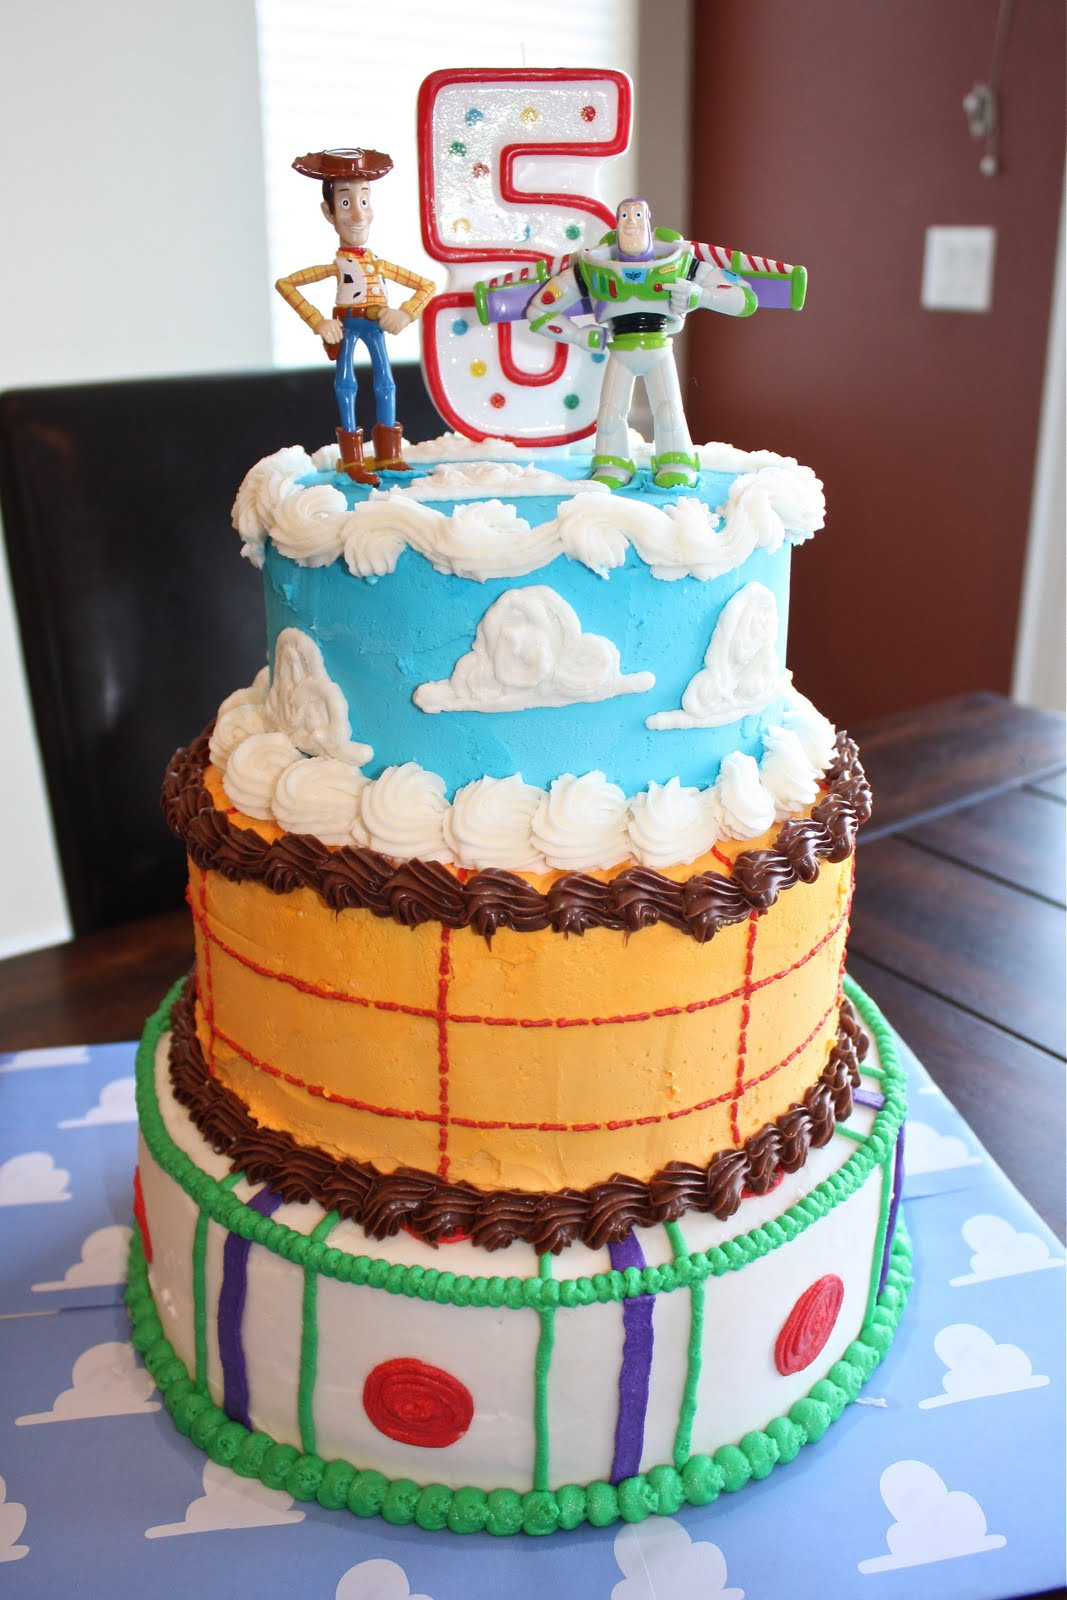 Toy Story Birthday Cakes Ideas  3 Little Things Toy Story Mania Cake